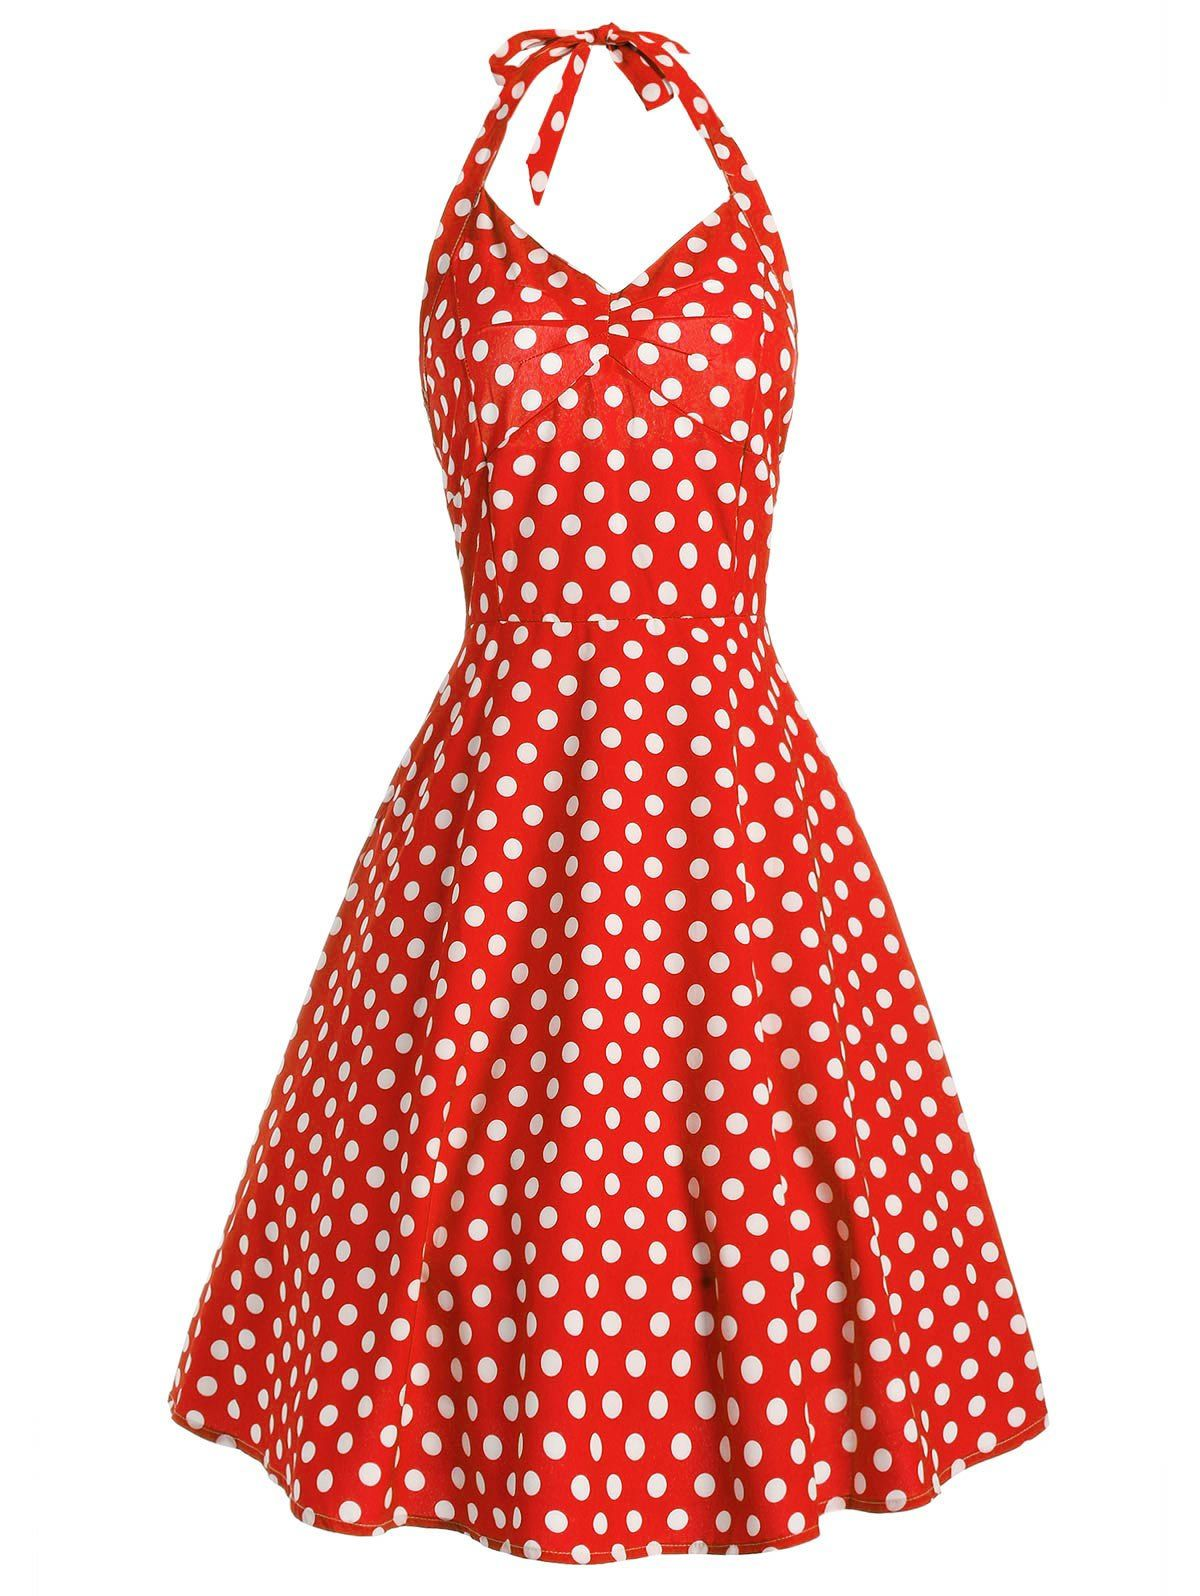 Halter lace up polka dot s dress vintage dresses vintage and